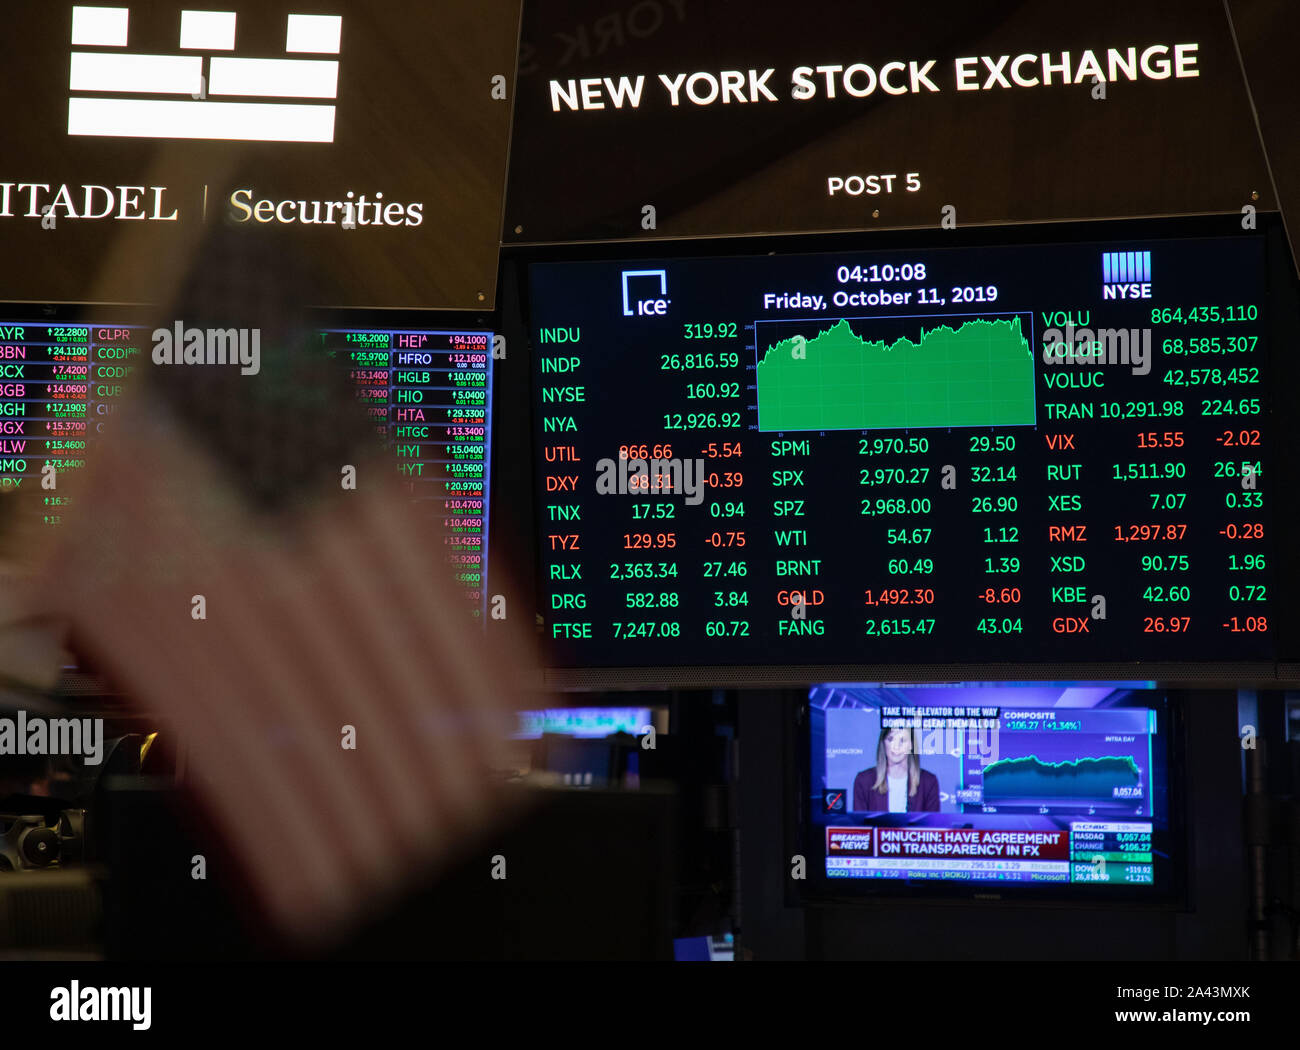 New York, USA. 11th Oct, 2019. Electronic screens show the trading data at the New York Stock Exchange in New York, the United States, on Oct. 11, 2019. U.S. stocks rallied on Friday. The Dow closed up 1.21 percent to 26,816.59, the S&P 500 rose 1.09 percent to 2,970.27, and the Nasdaq increased 1.34 percent to 8,057.04. Credit: Guo Peiran/Xinhua/Alamy Live News Stock Photo